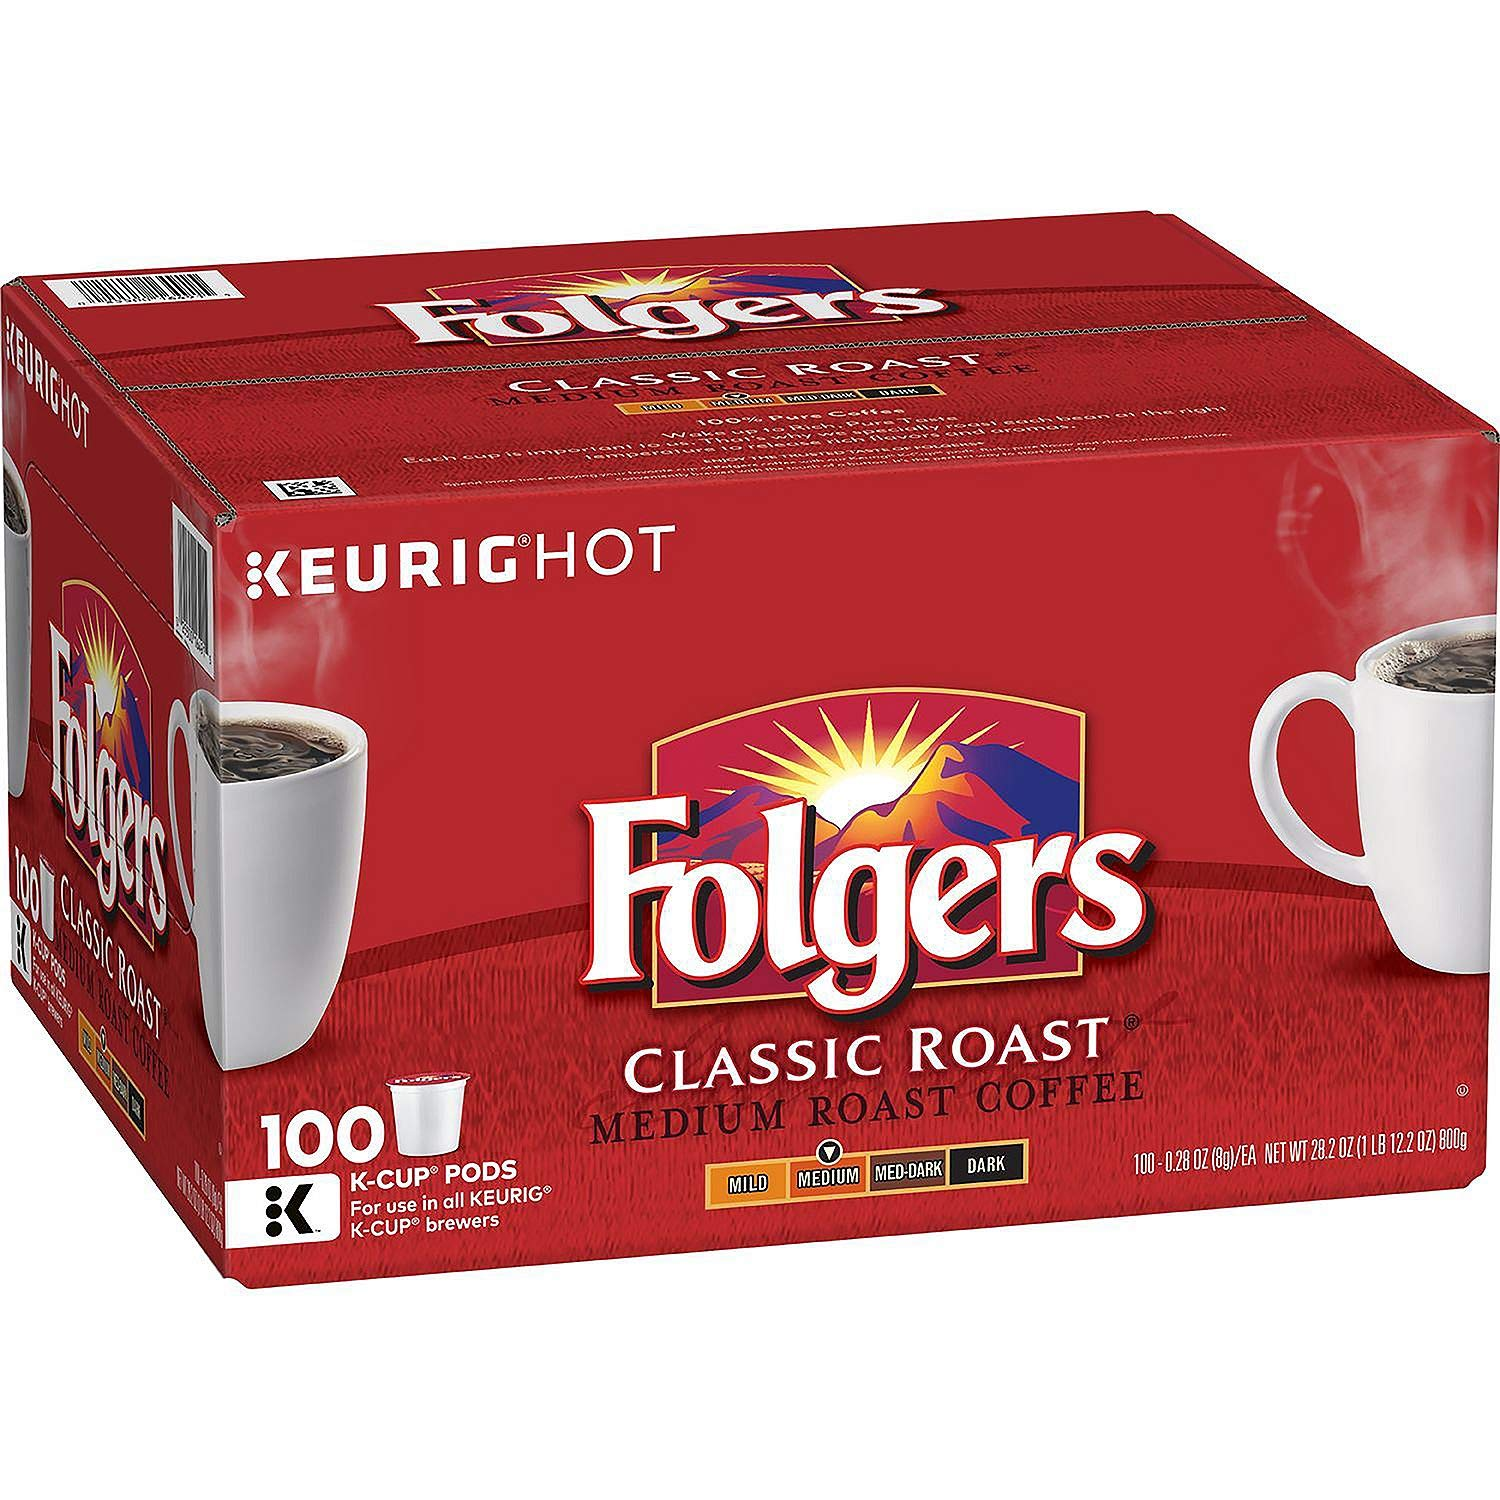 FOLGERS K CUPS Folgers Classic Roast Coffee 1 Pack (100 K-Cups)